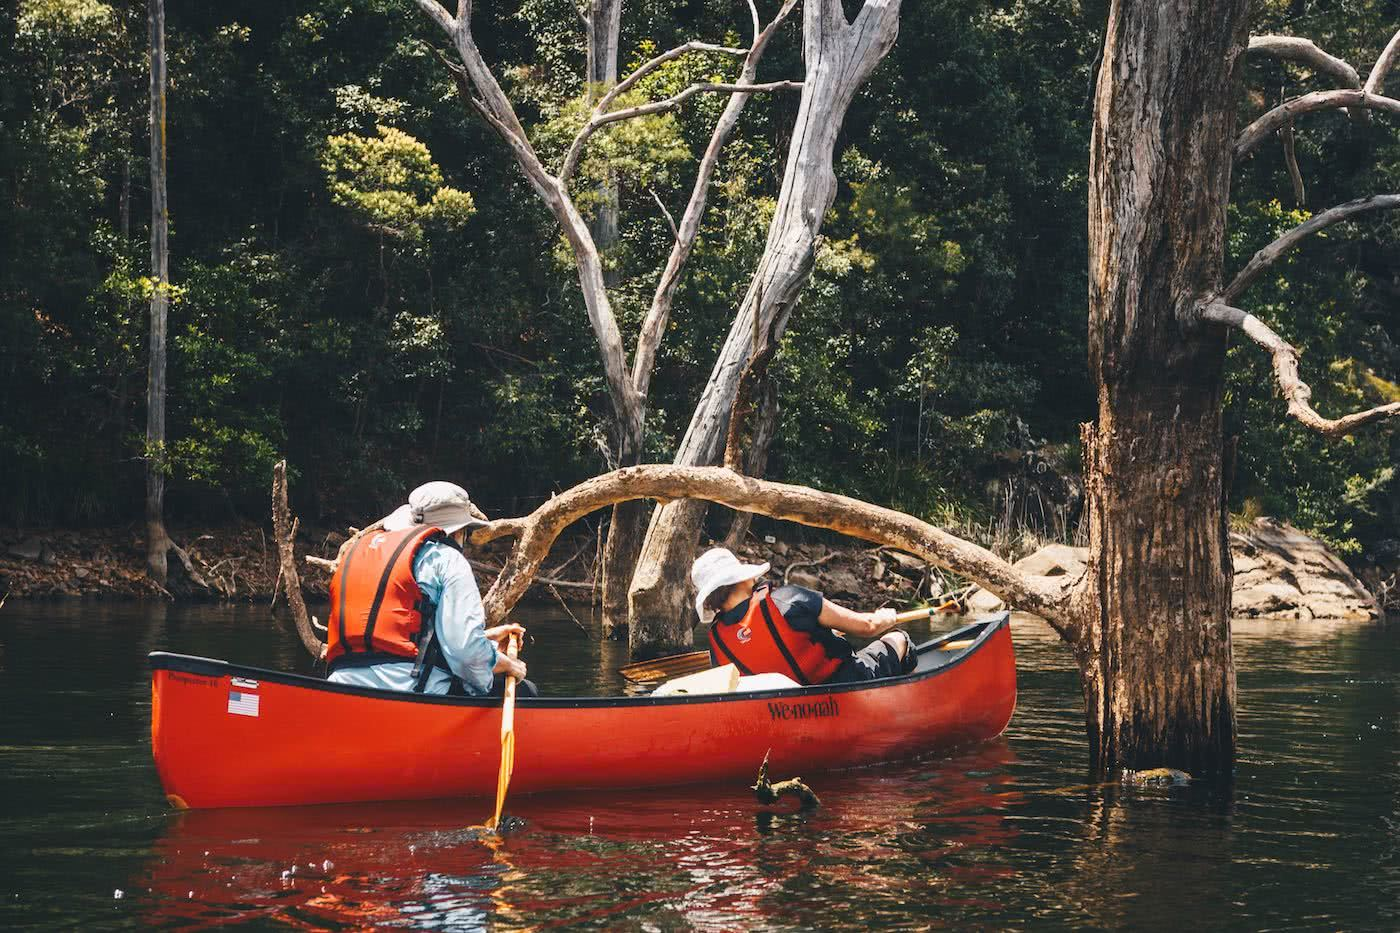 When Everything Flows // Kangaroo Valley Canoeing Escape, Aron Hailey, bough, ducking, canoe, buoyancy aid, paddle